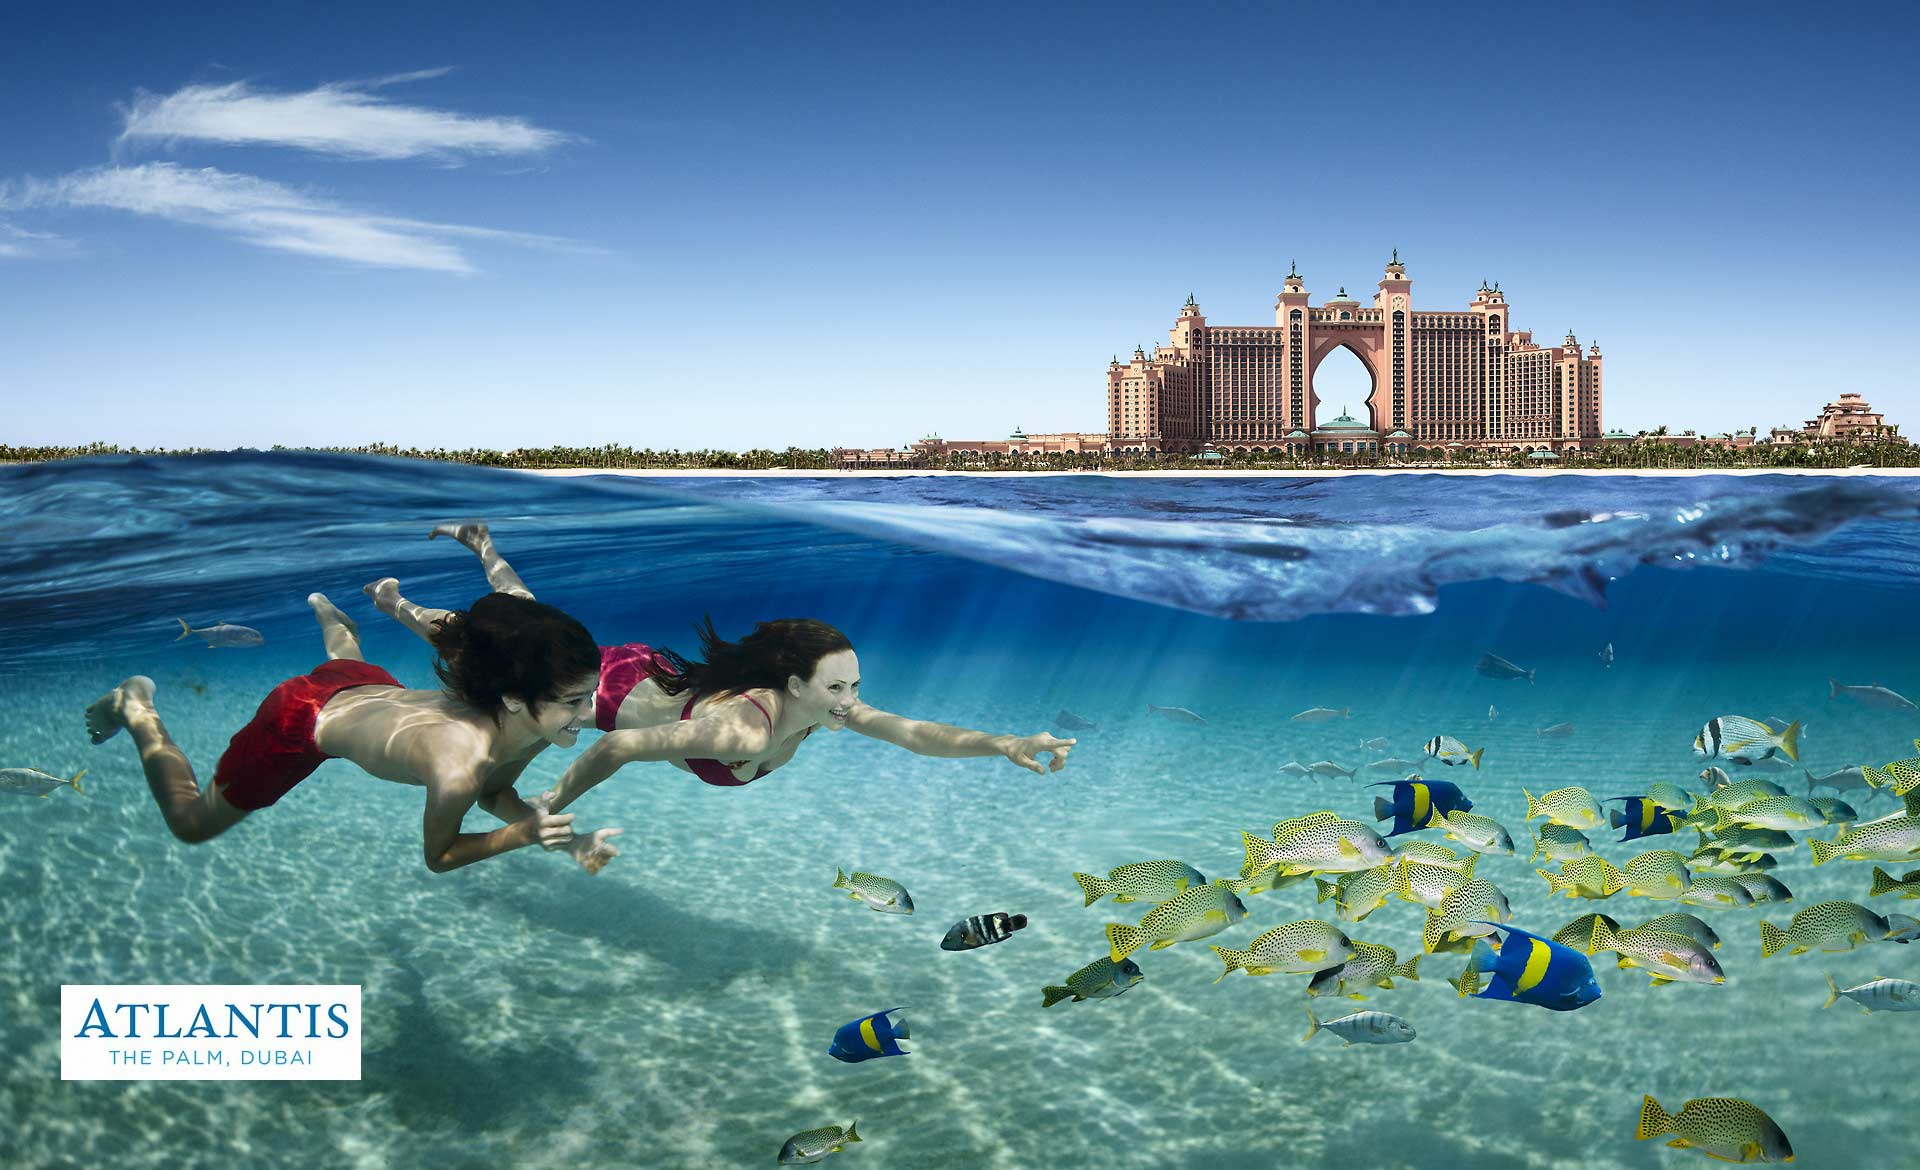 Atlantis Hotel and Resort